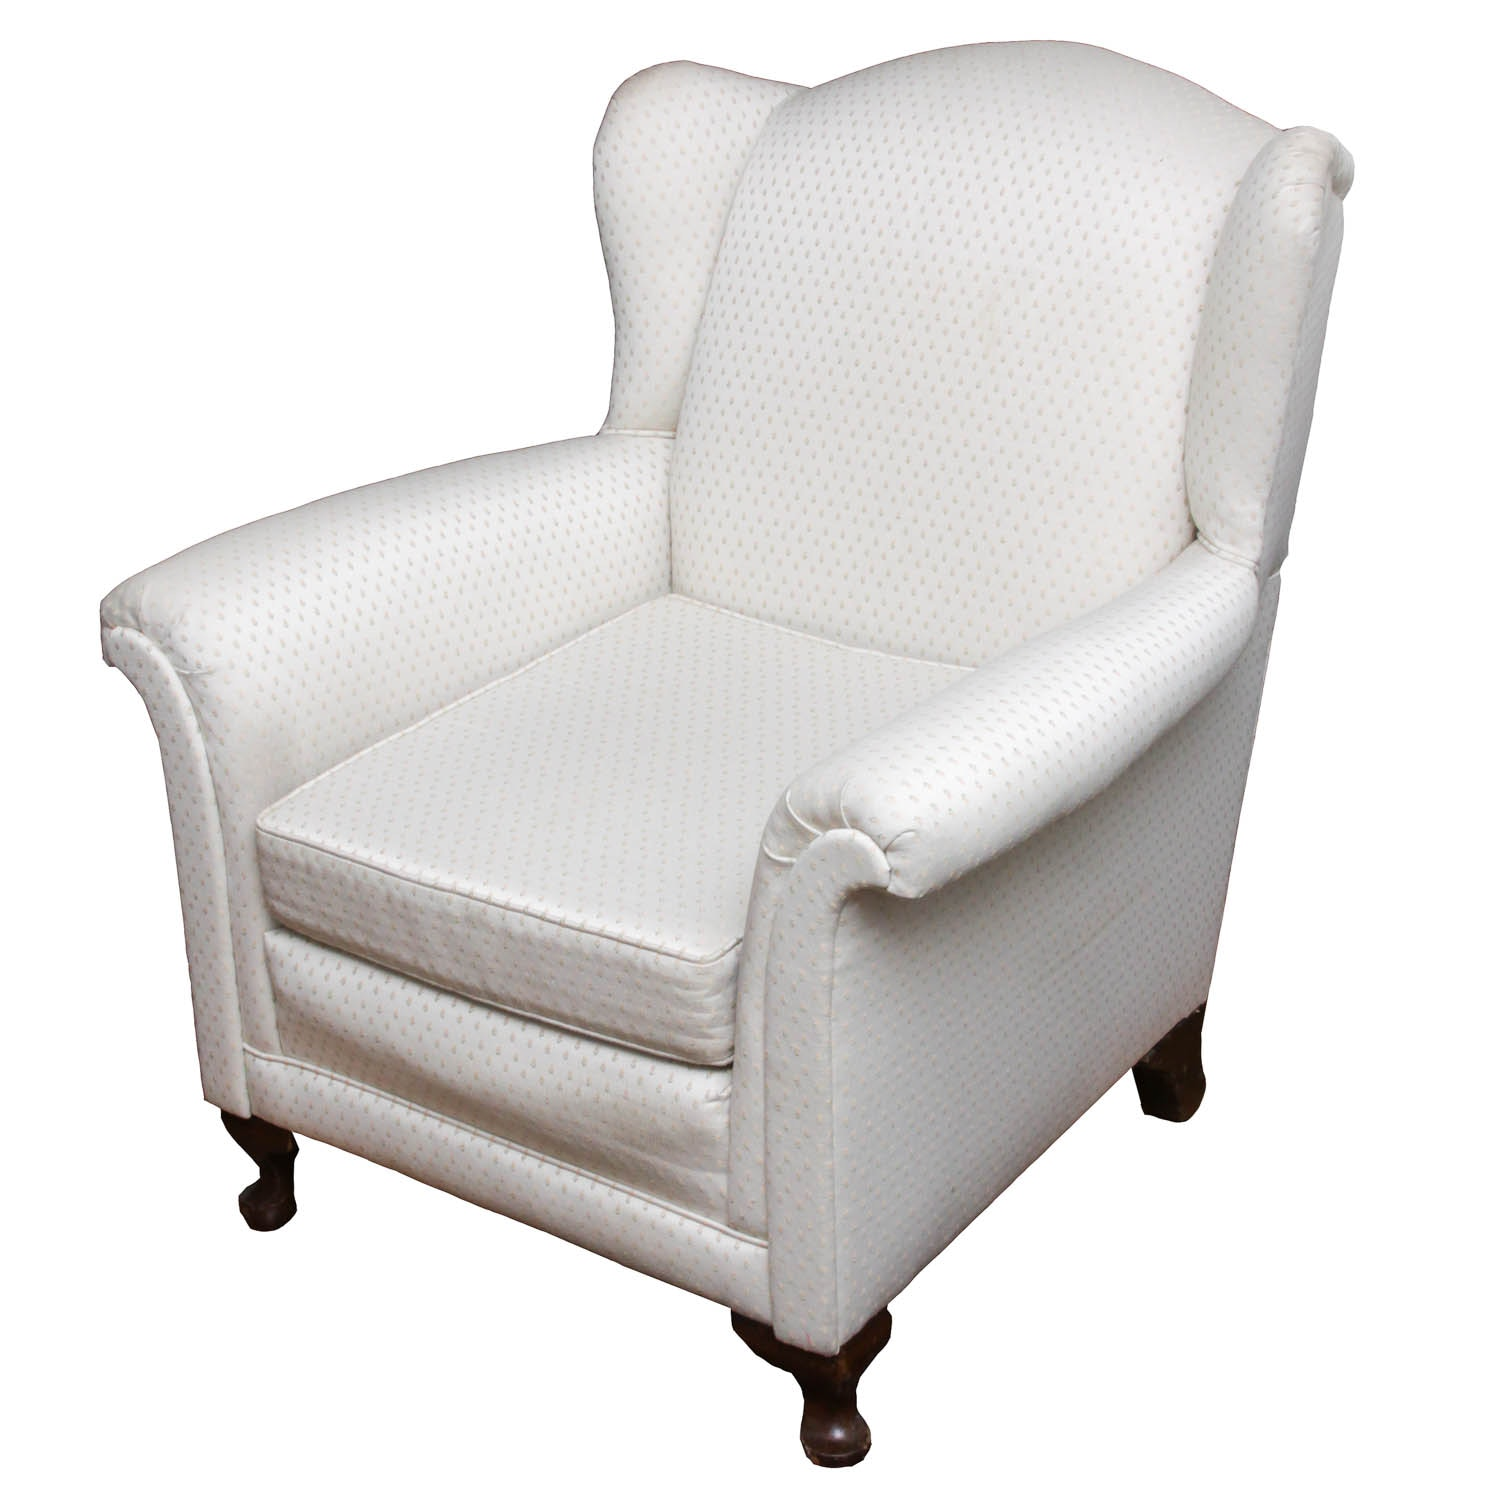 White Upholstered Wing Back Armchair